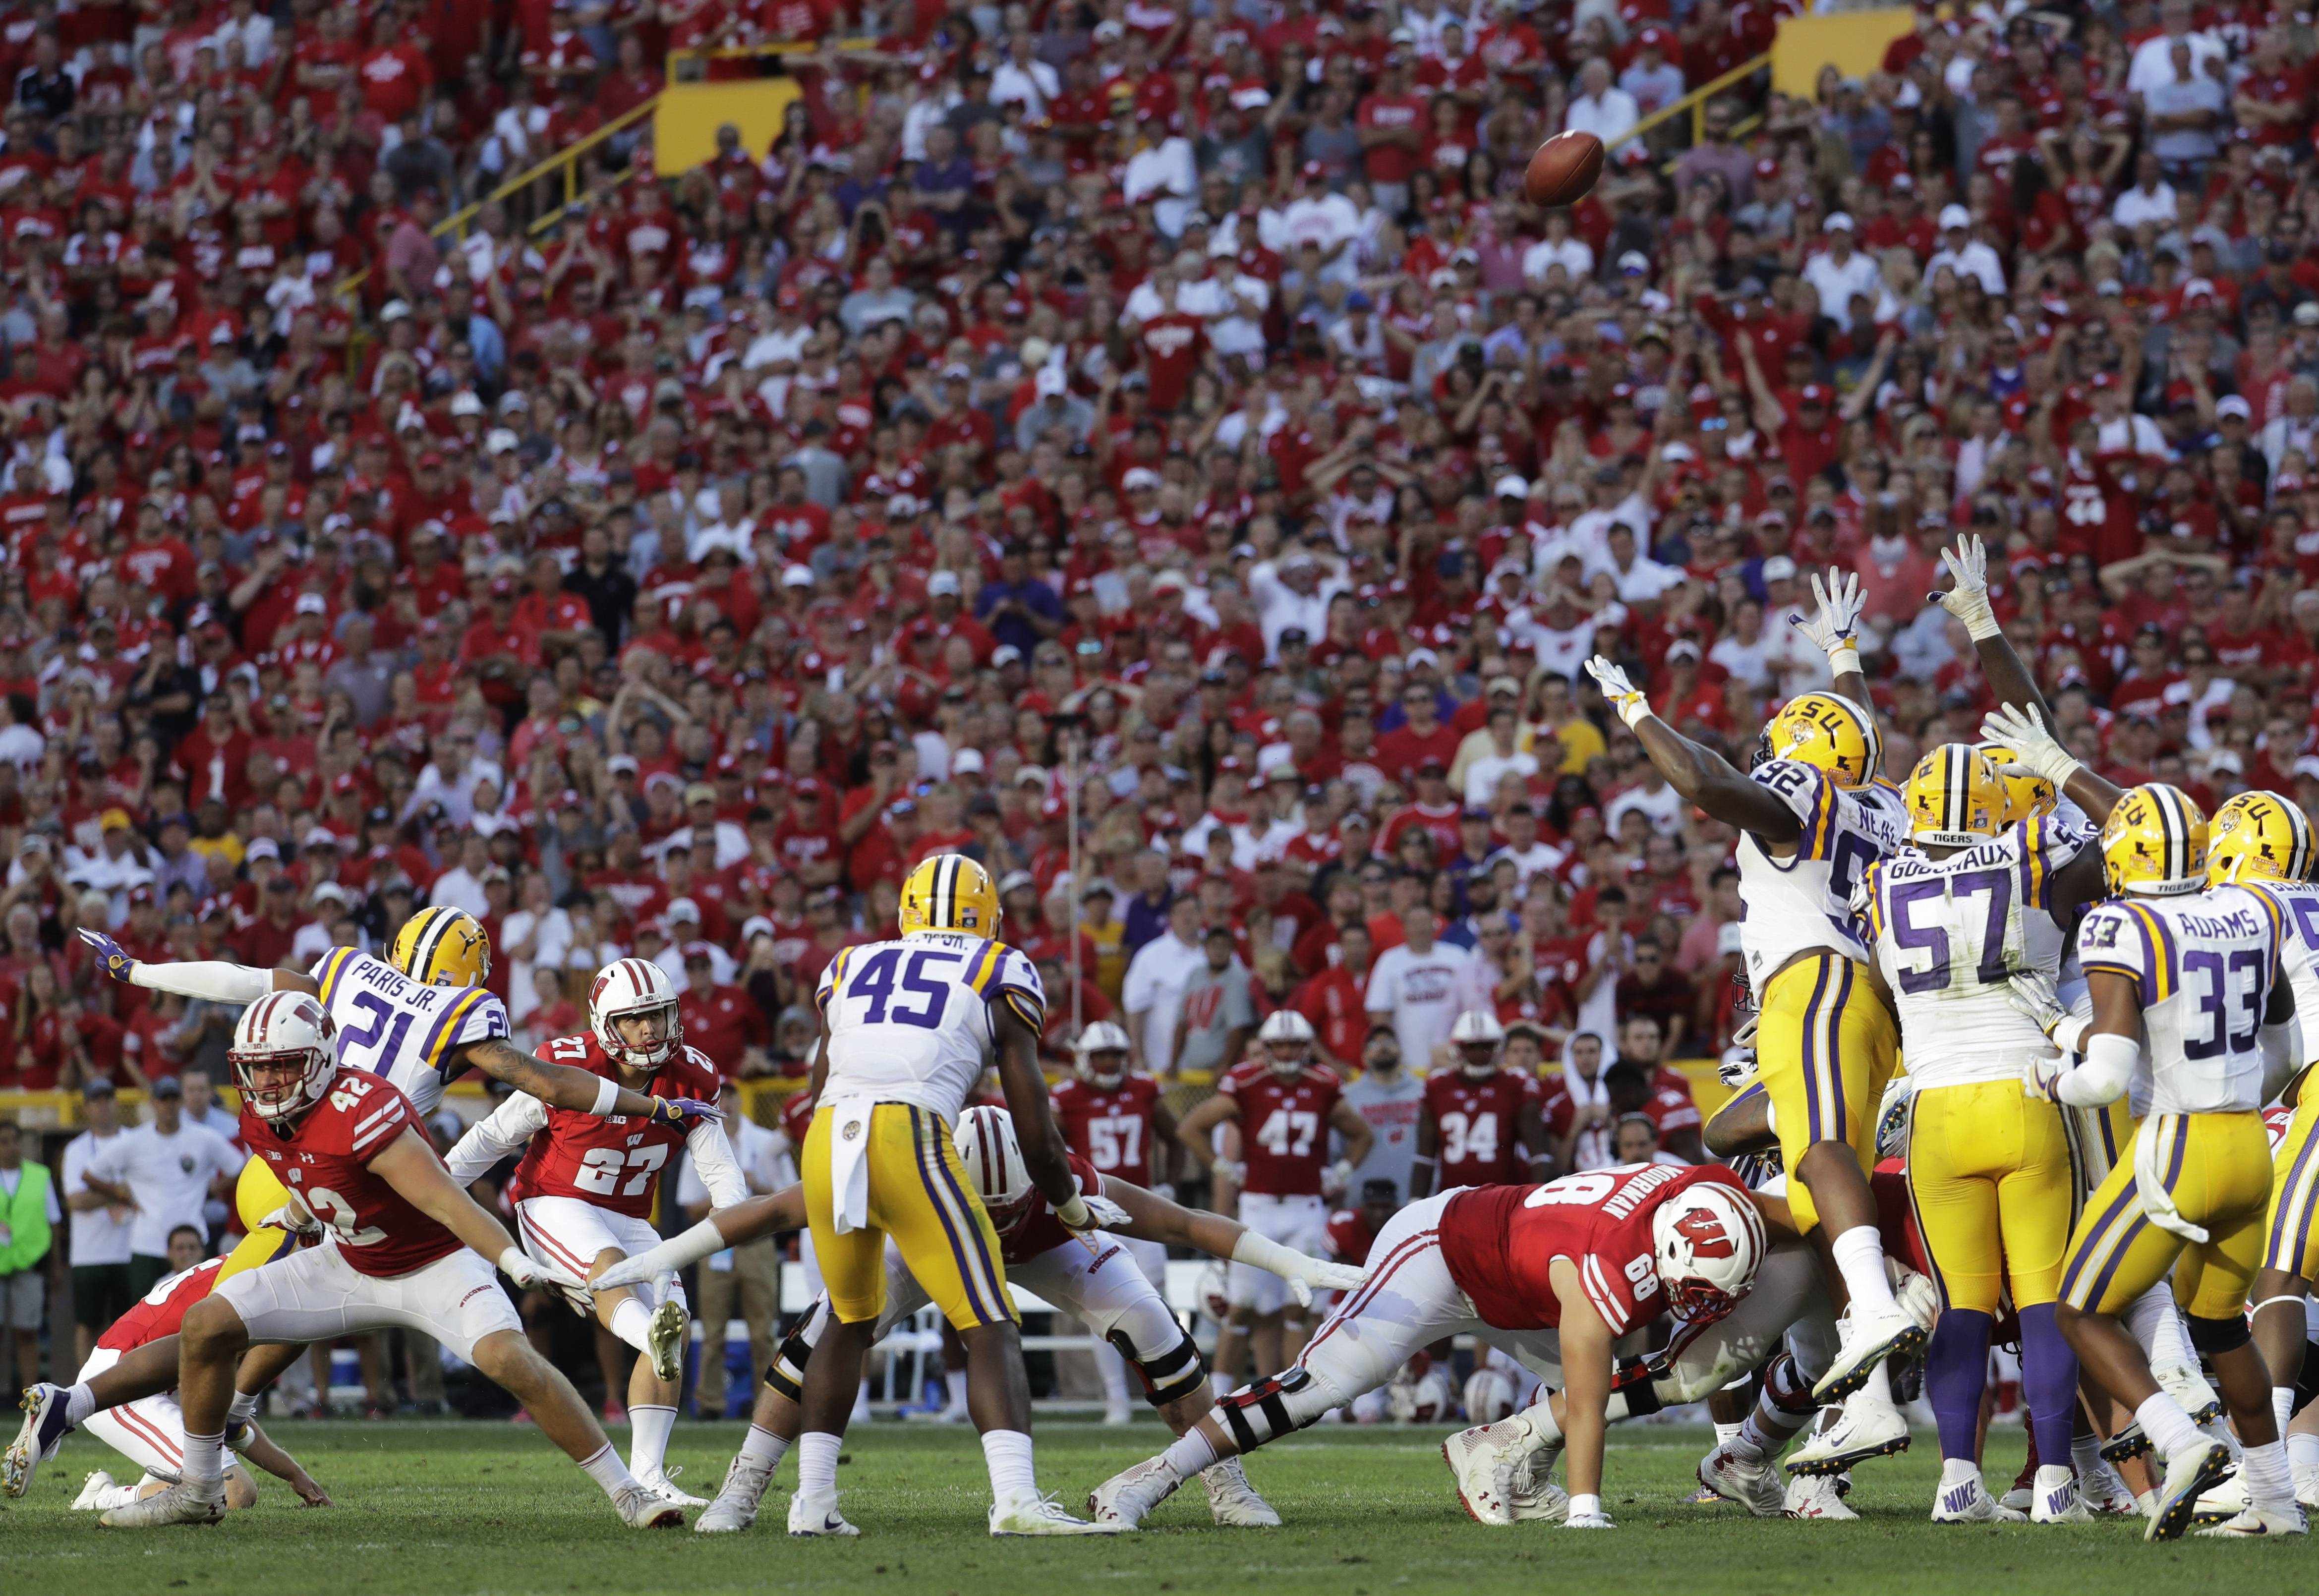 Wisconsin place kicker Rafael Gaglianone kicks a field goal with teammate Robert Wheelwright late in the second half of an NCAA college football game against LSU Saturday, Sept. 3, 2016, in Green Bay, Wis. Wisconsin won 16-14. (AP Photo/Morry Gash)